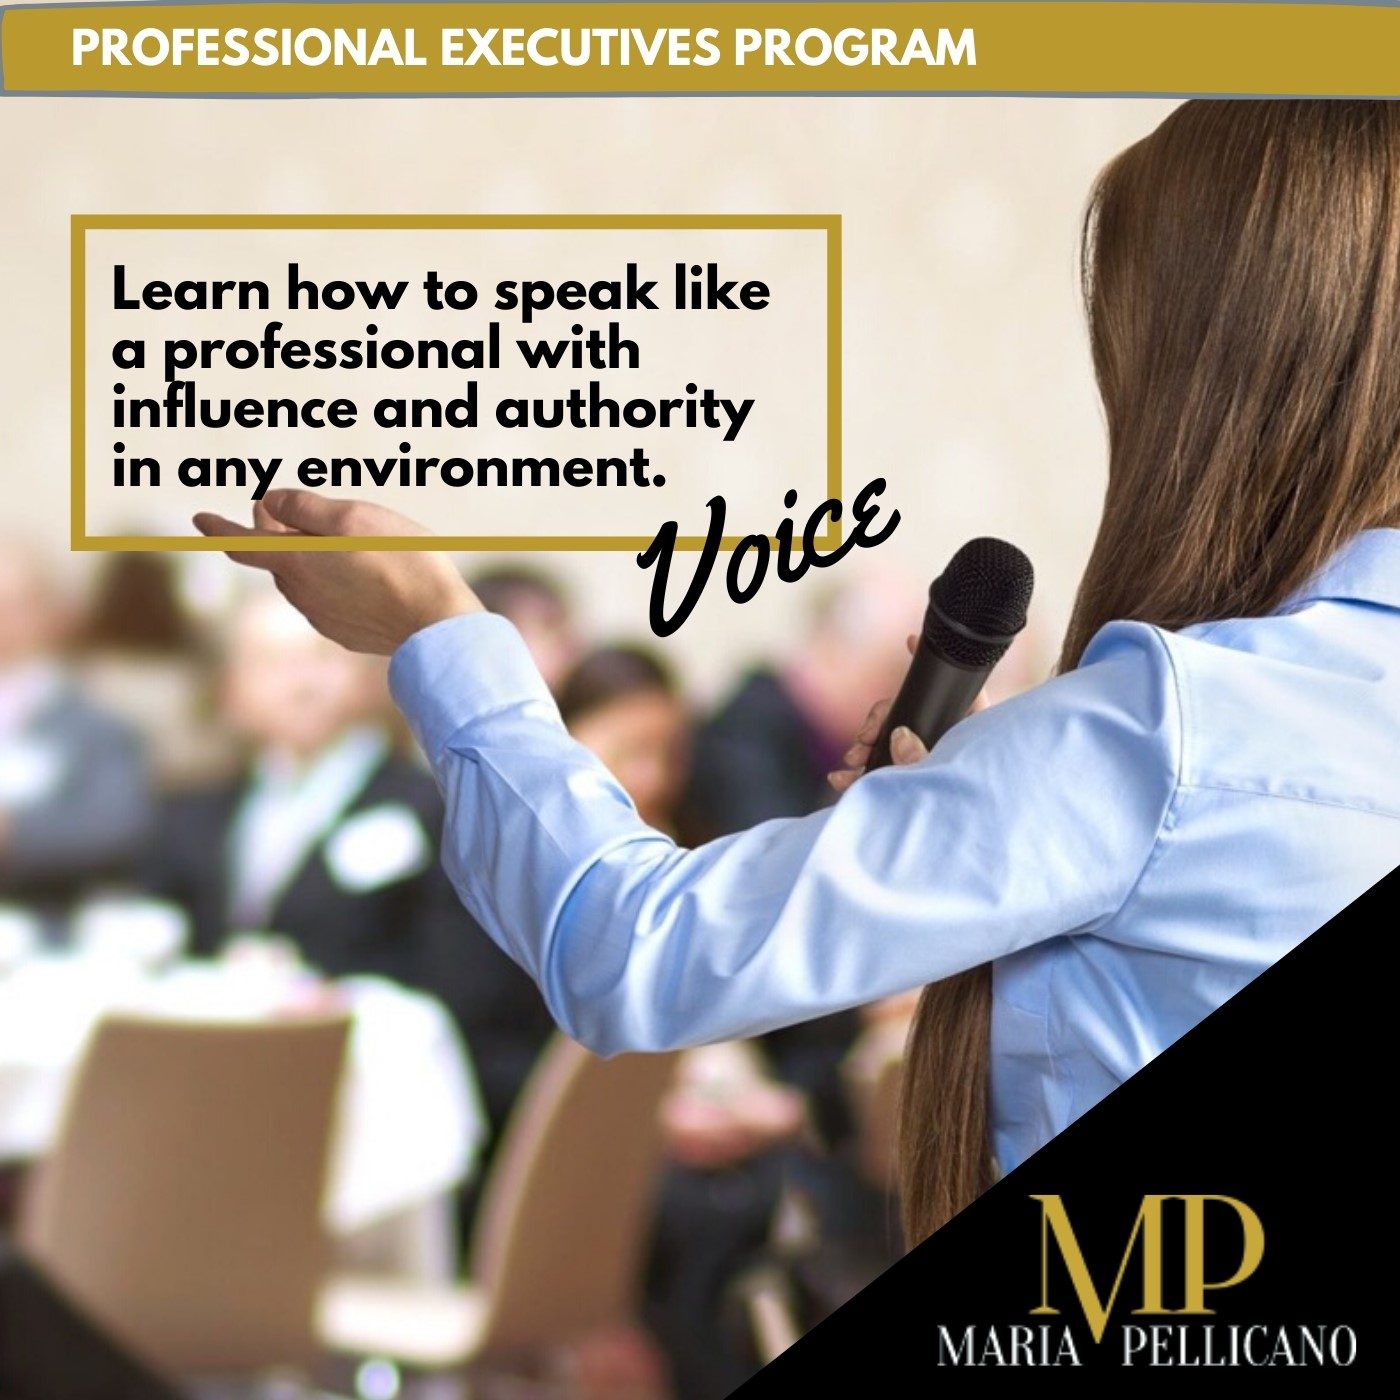 Learn how to speak like a profesional with influence and authority in any environment